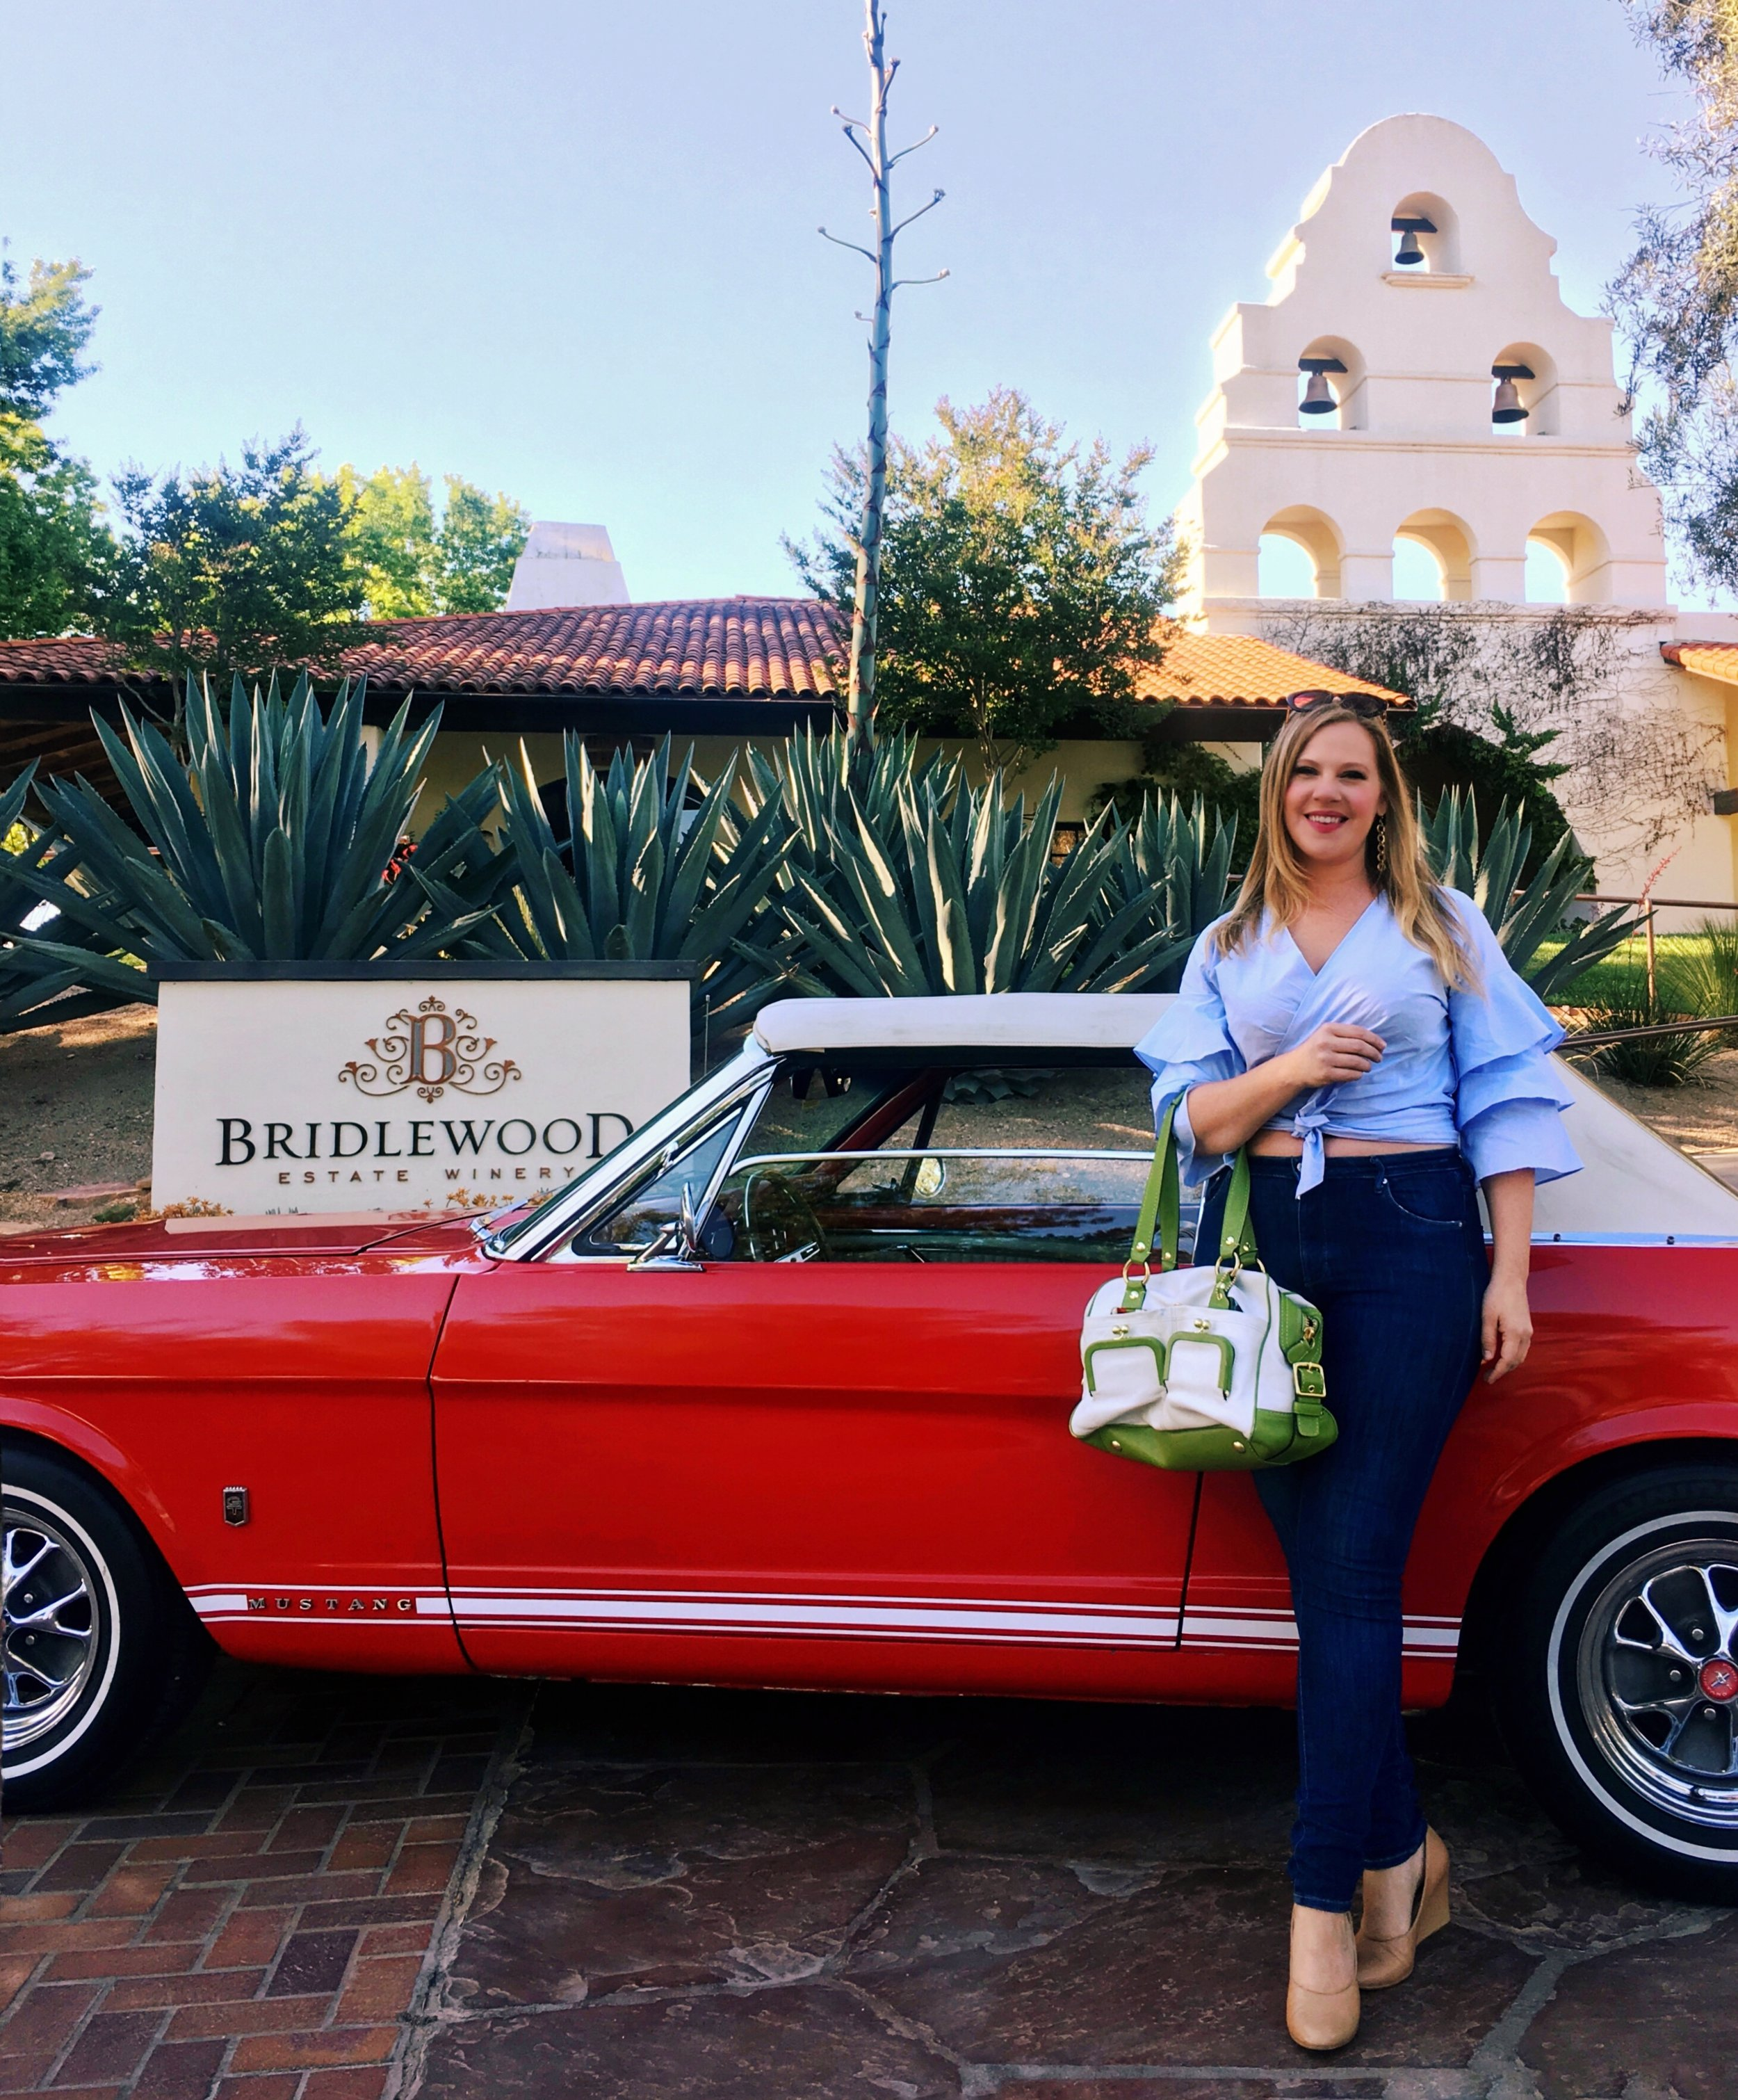 Visiting Bridlewood Estate Winery in Santa Ynez, California. Blonde with vintage red Mustang convertible, classic cars in California, wineries of the Central Coast, Sarah Tracey of The Lush Life, wine travel blog.